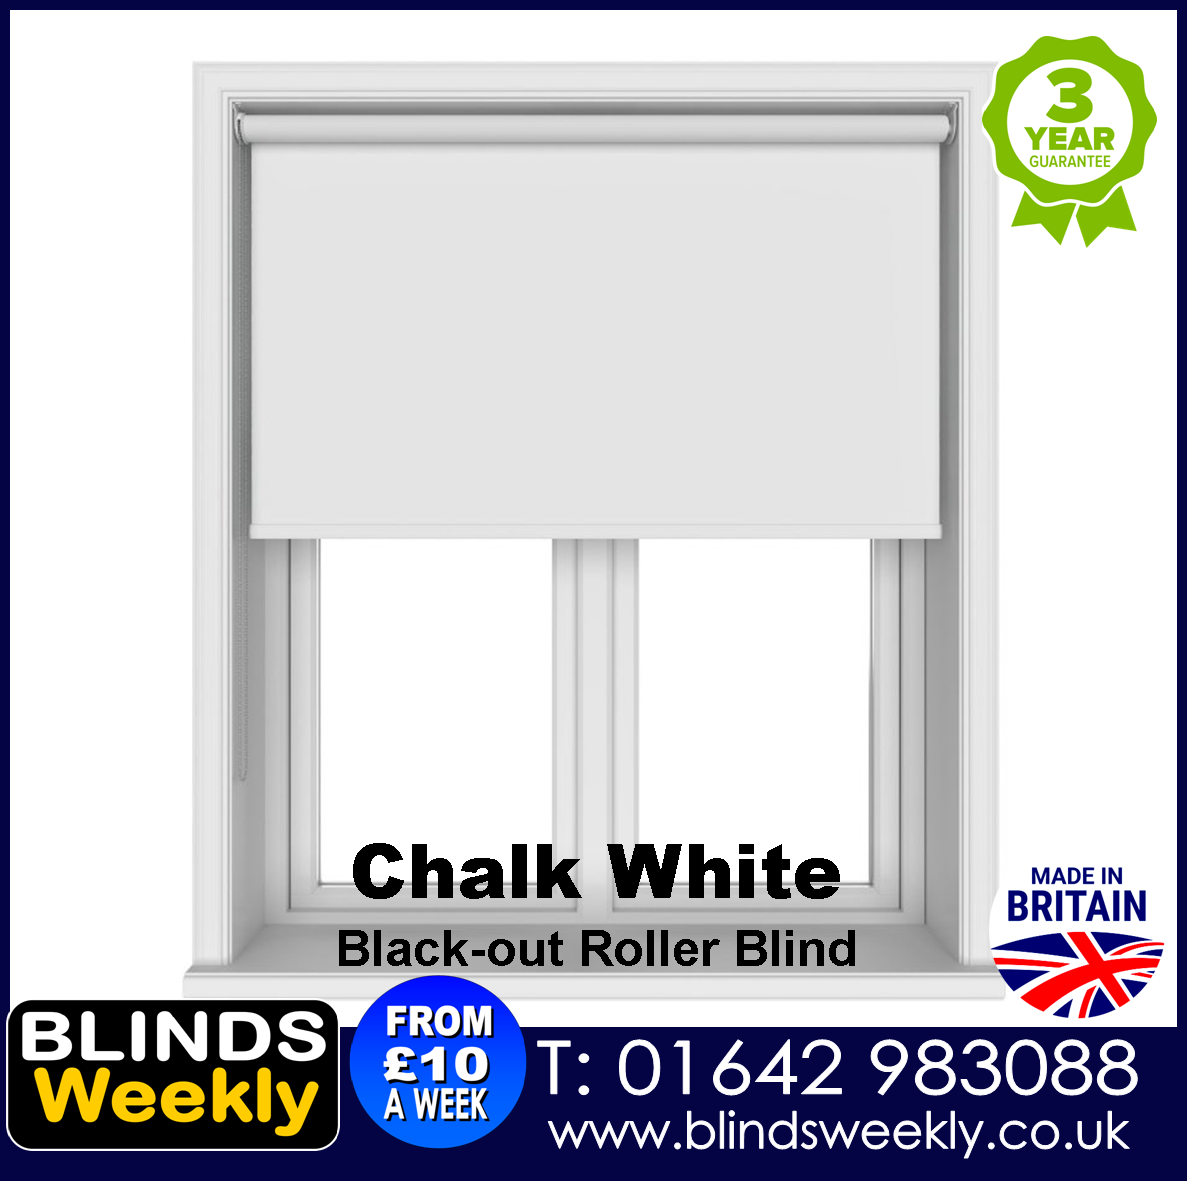 Blinds Weekly Blackout Roller Blind - CHALK WHITE